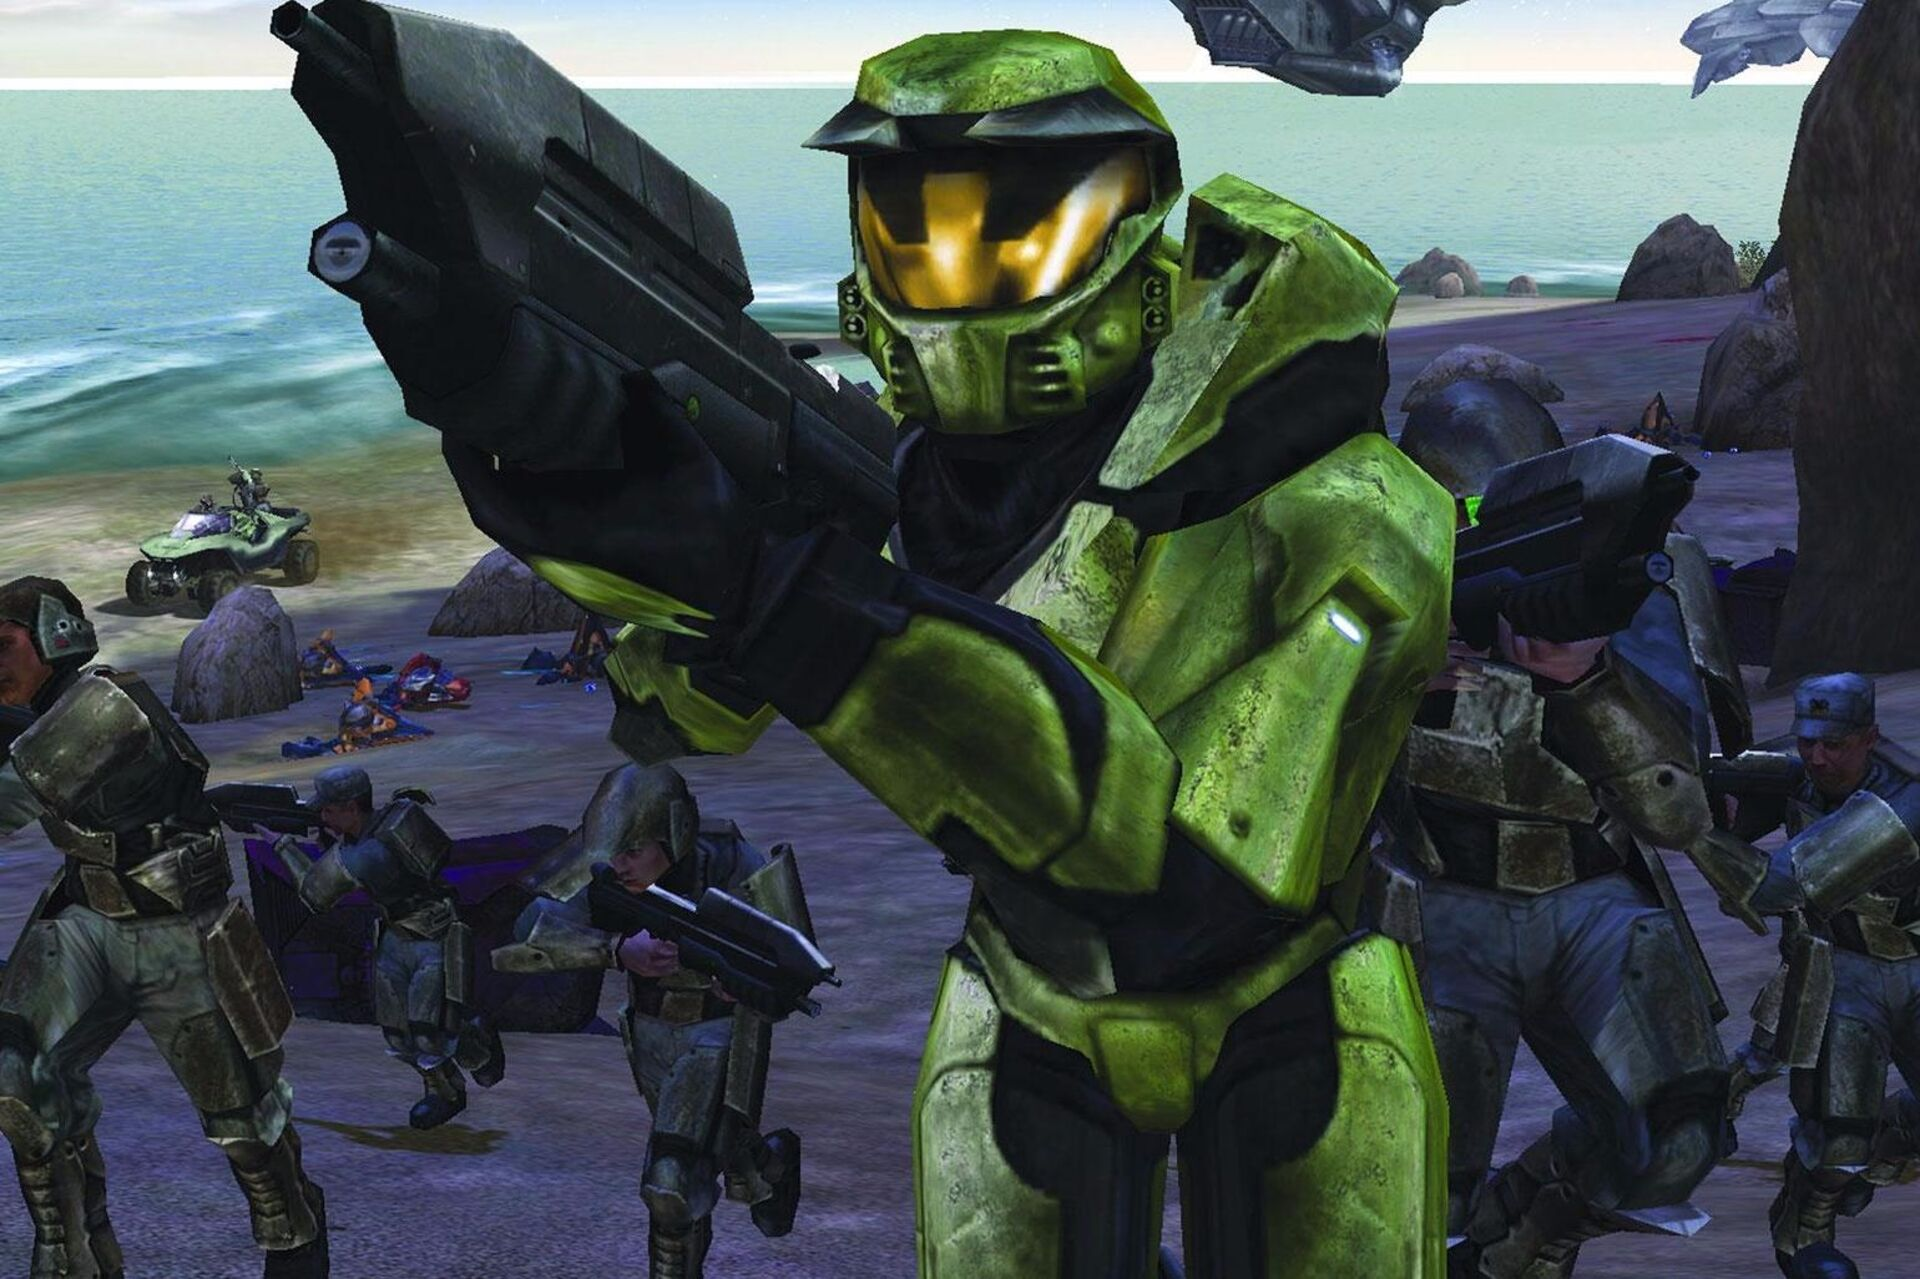 DF Retro: Halo - the console shooter that changed everything